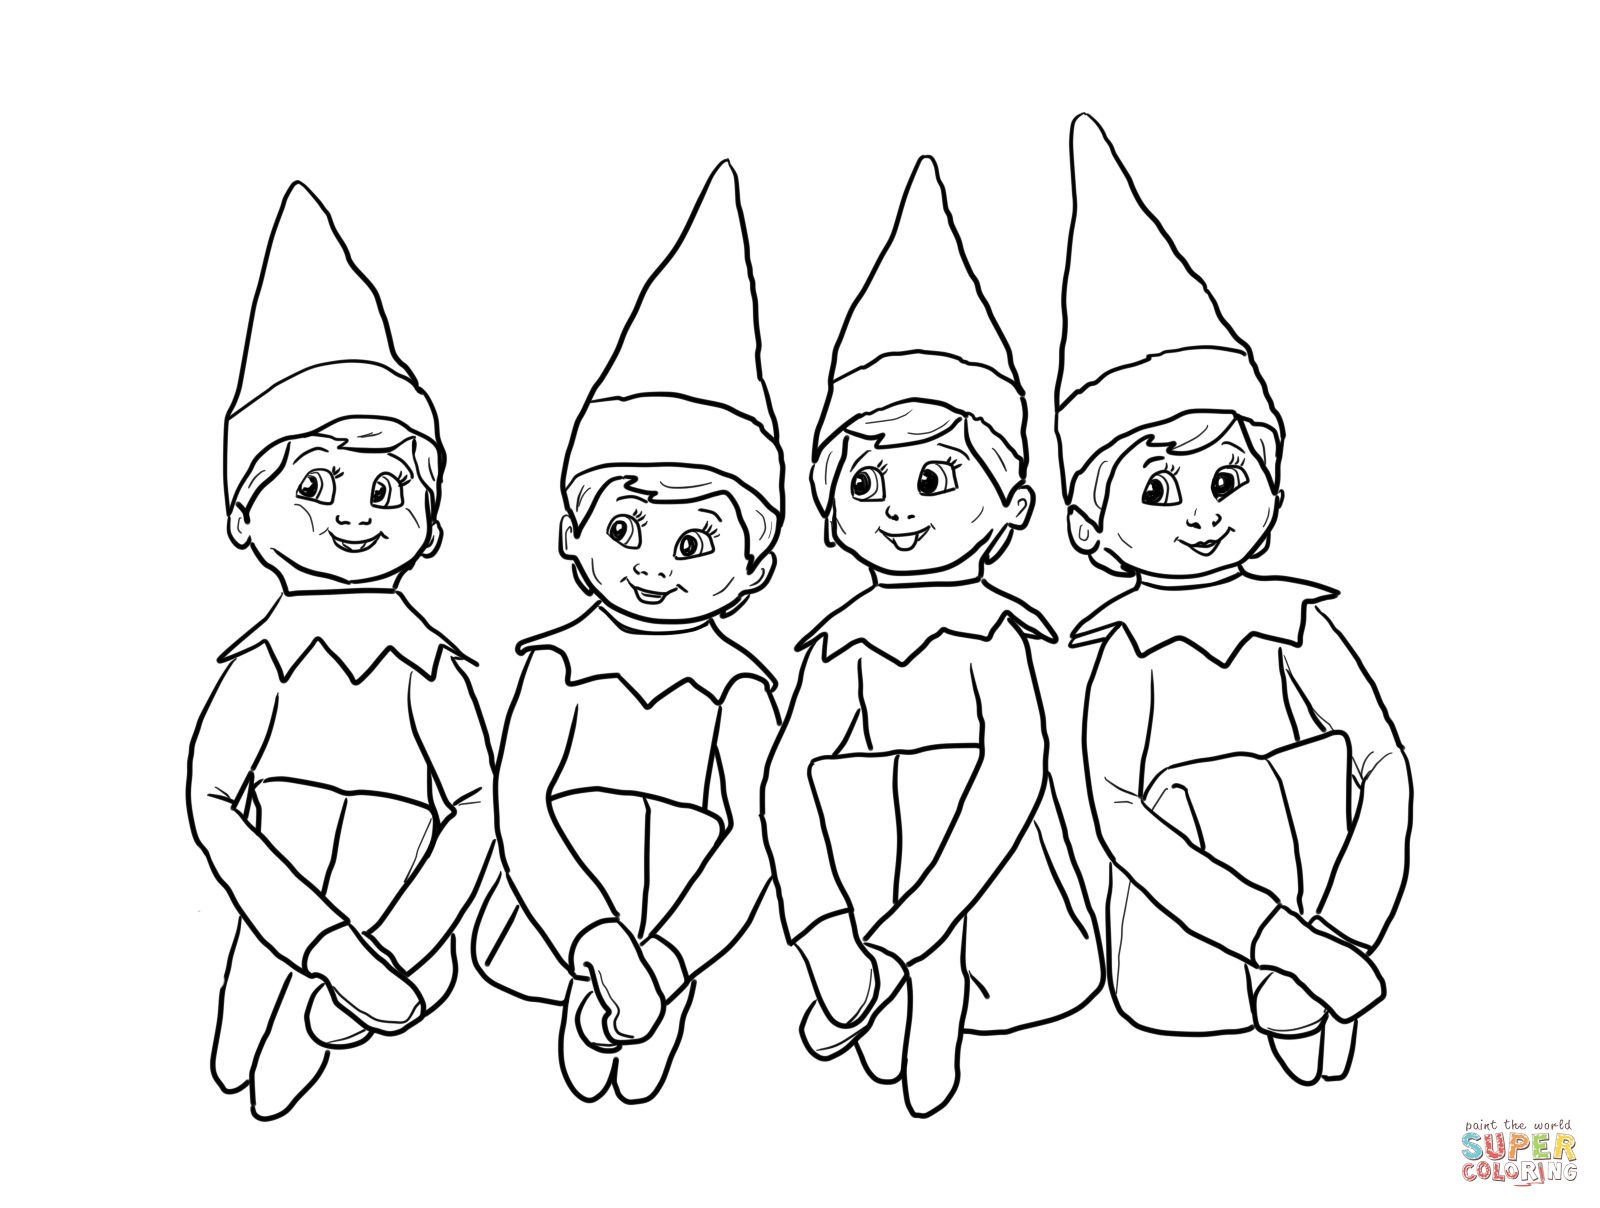 Elves on the Shelf coloring page | SuperColoring.com ...